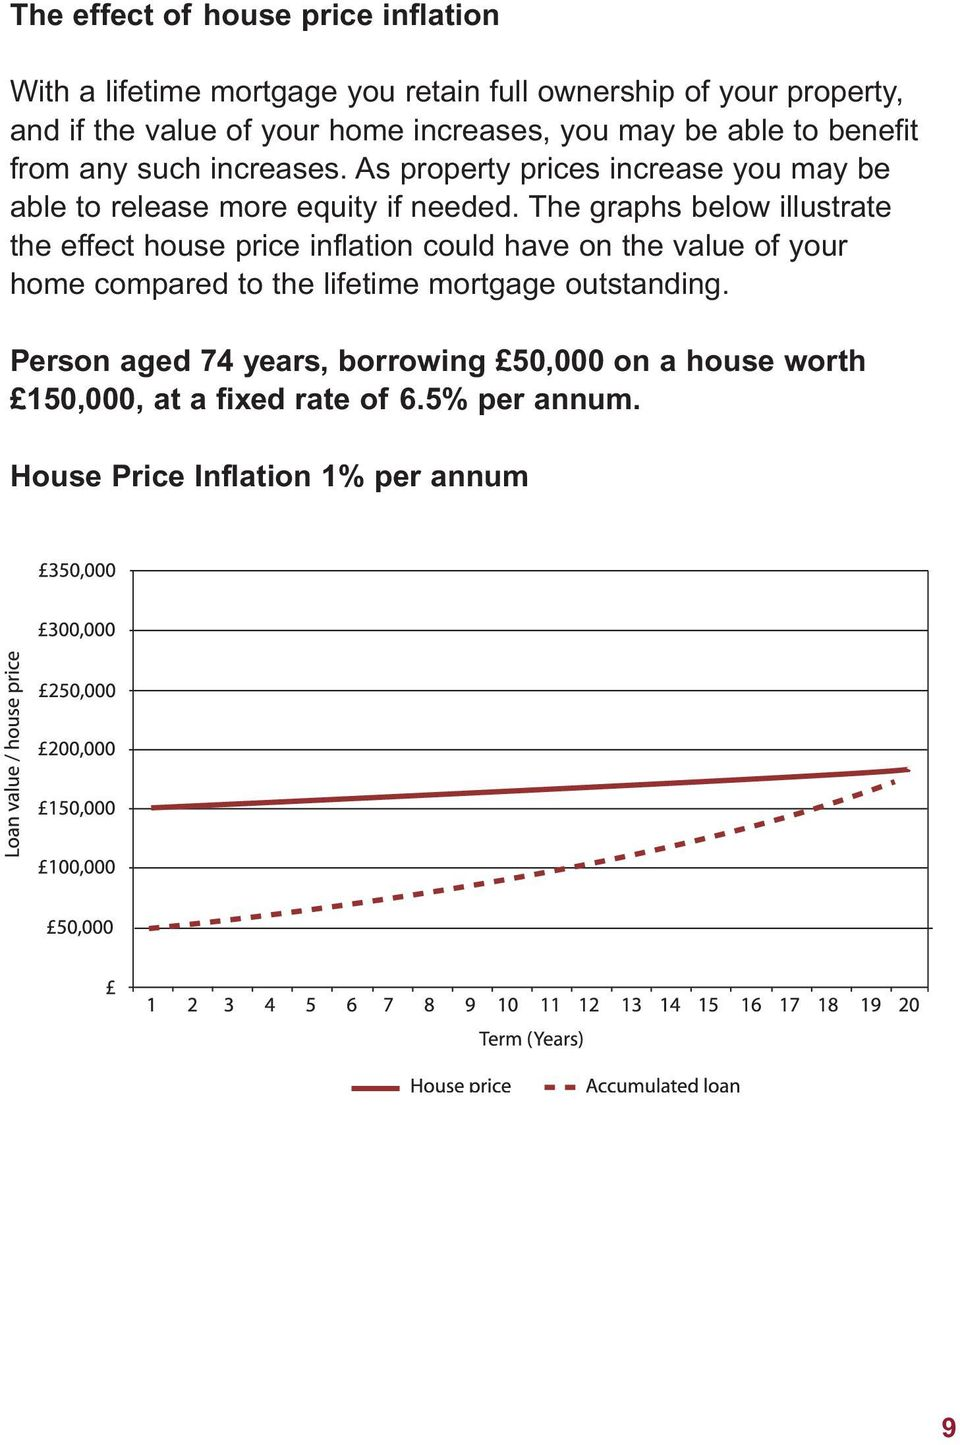 The graphs below illustrate the effect house price inflation could have on the value of your home compared to the lifetime mortgage